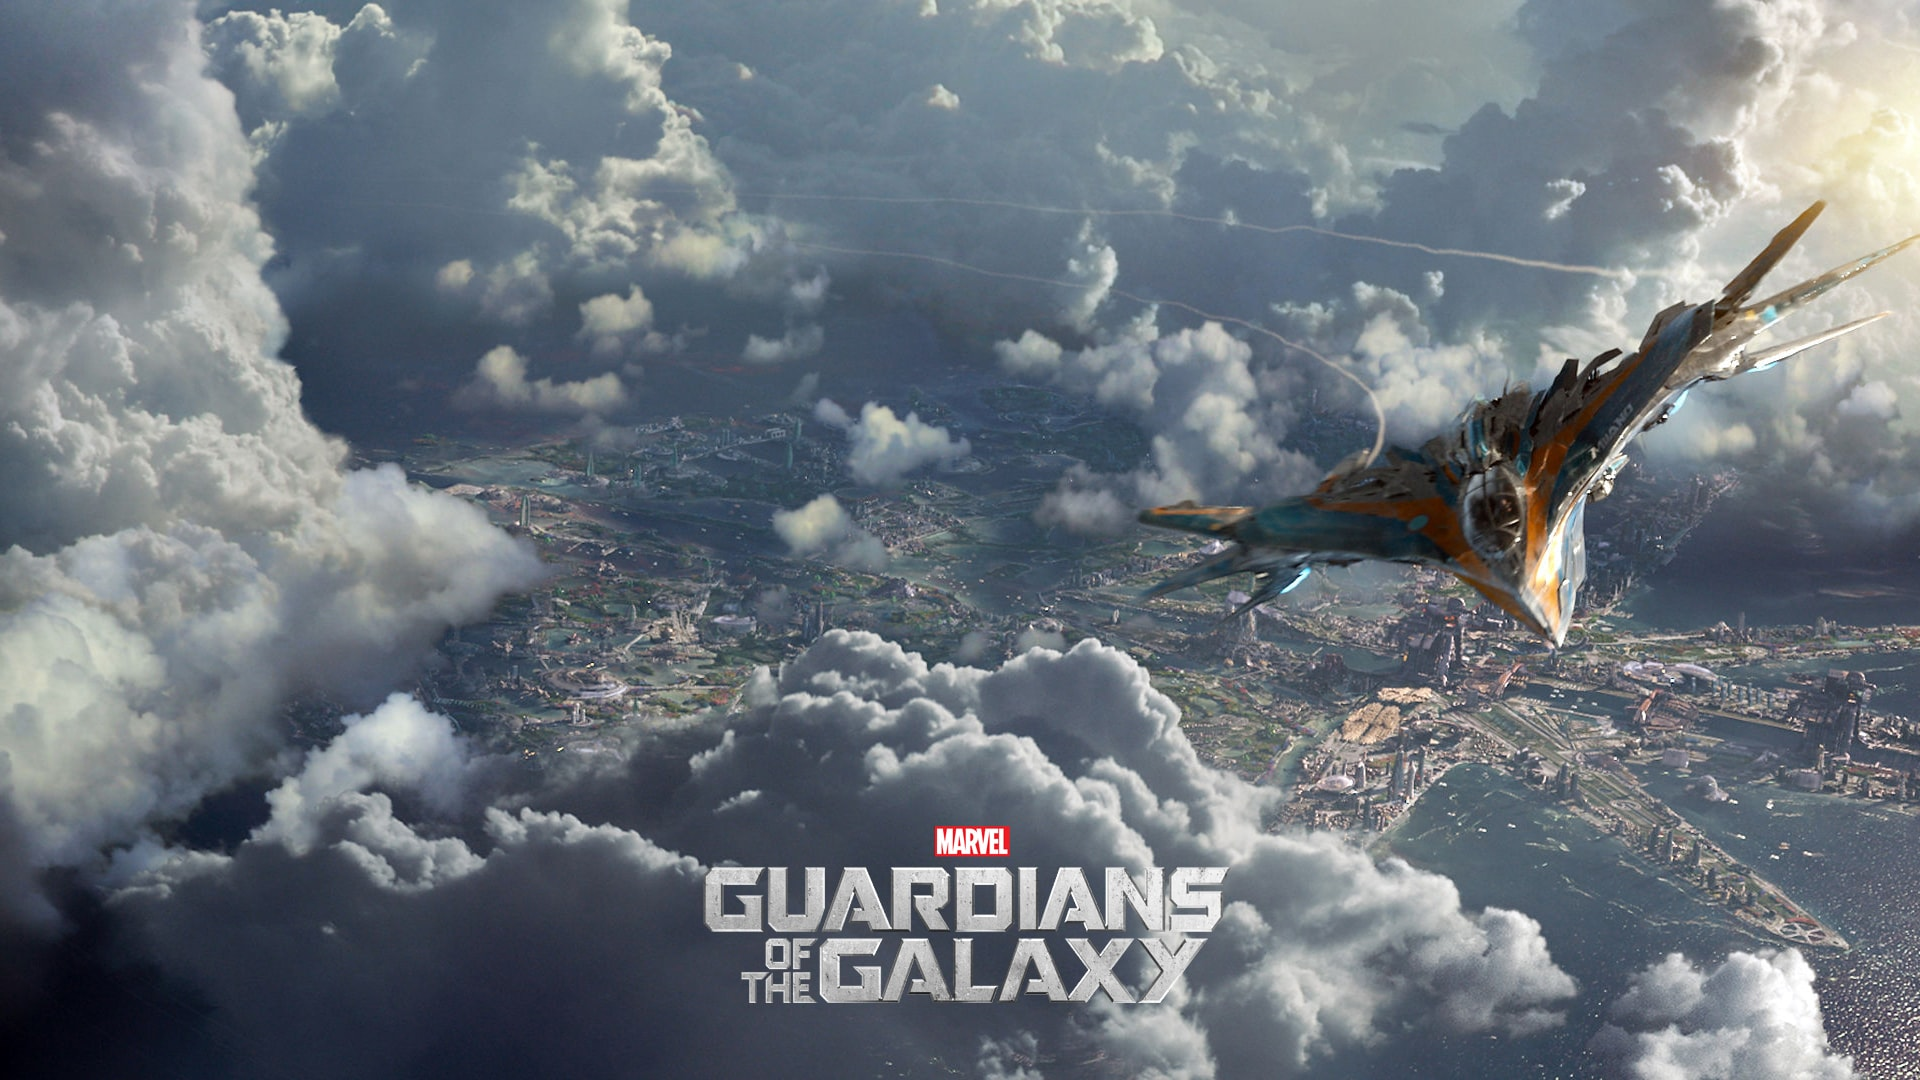 15 Incredible Guardians of the Galaxy HD Wallpapers 1920x1080